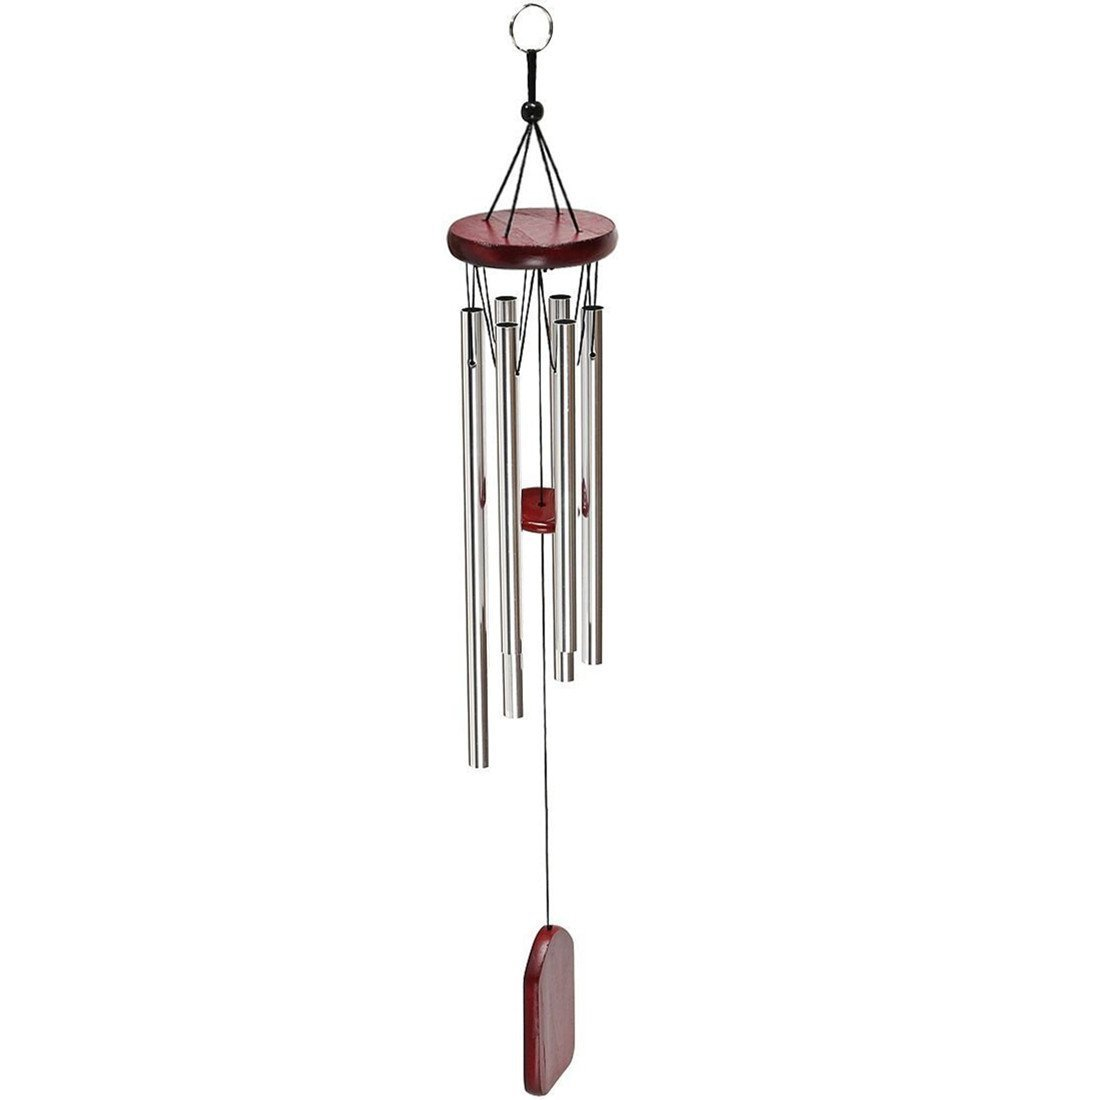 Wind Chime, Windchime Amazing Grace Wind Chimes Bells 6 Metal Tubes Outdoor for Garden, Yard,Patio and Home Decor